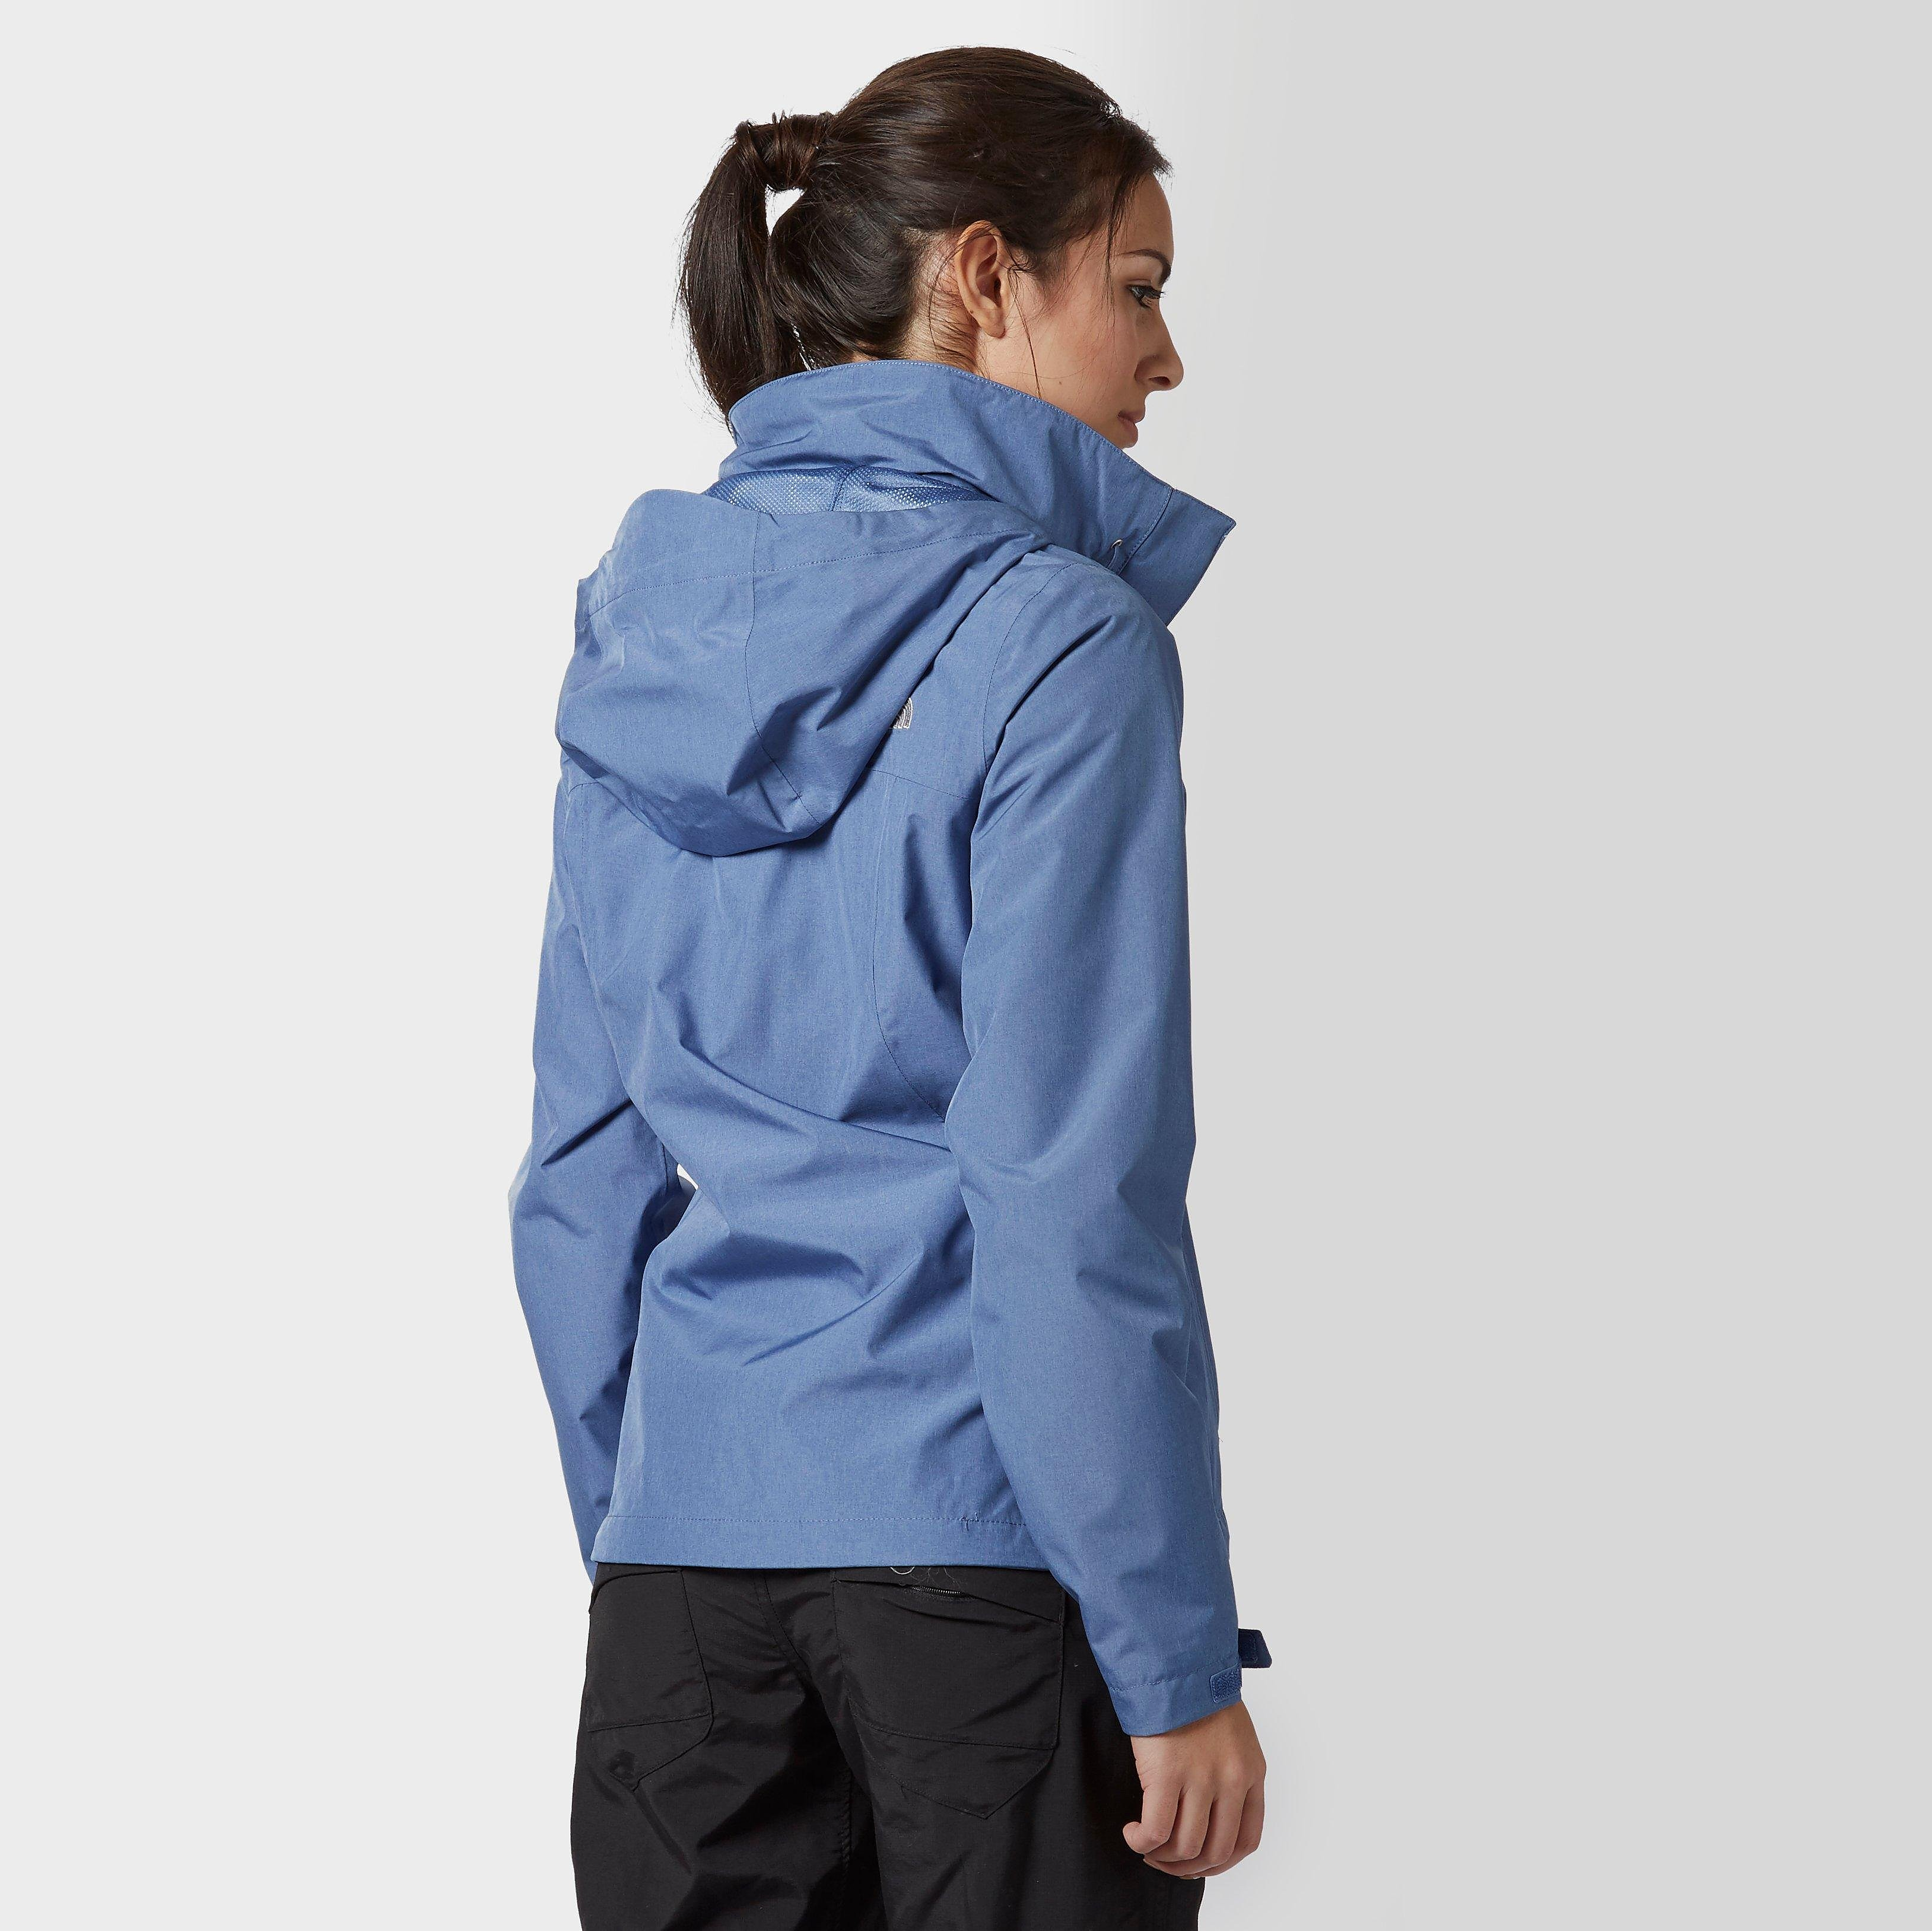 The North Face Sangro DryVent Waterproof Women's Jacket